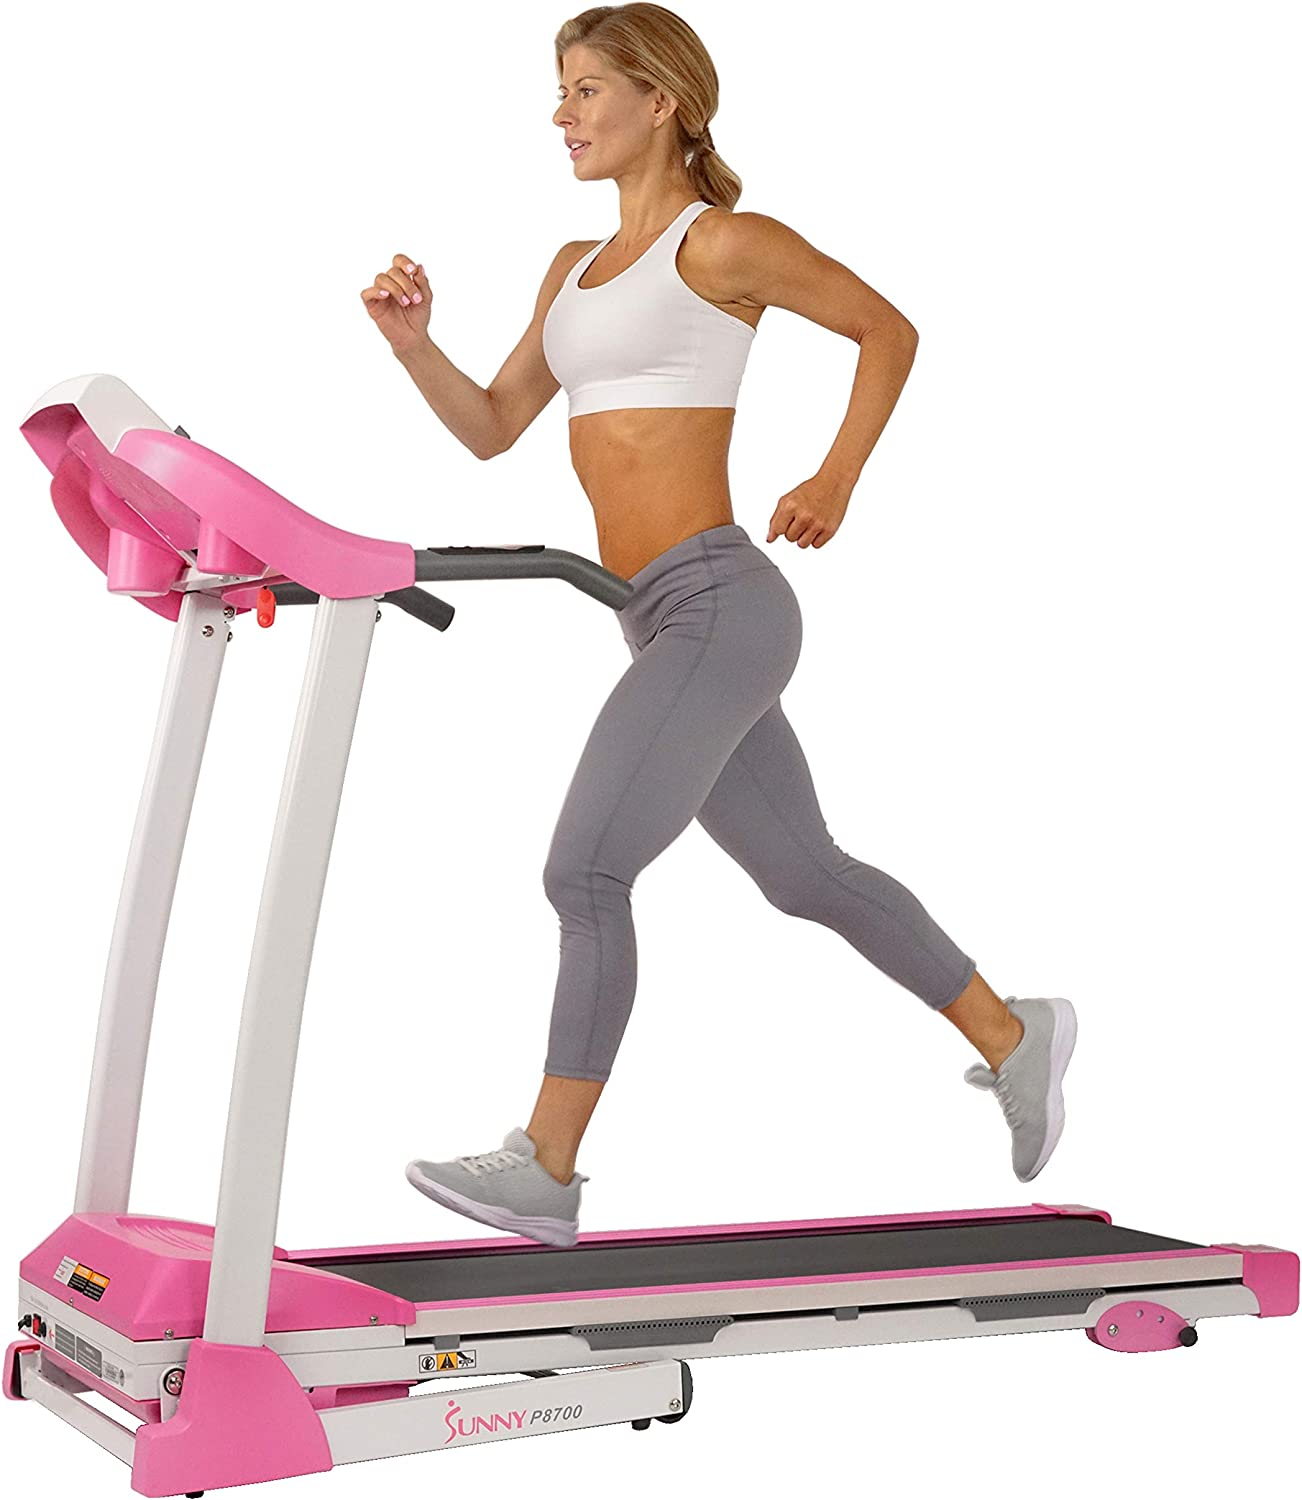 Best incline treadmill: Sunny Health & Fitness Folding Treadmill